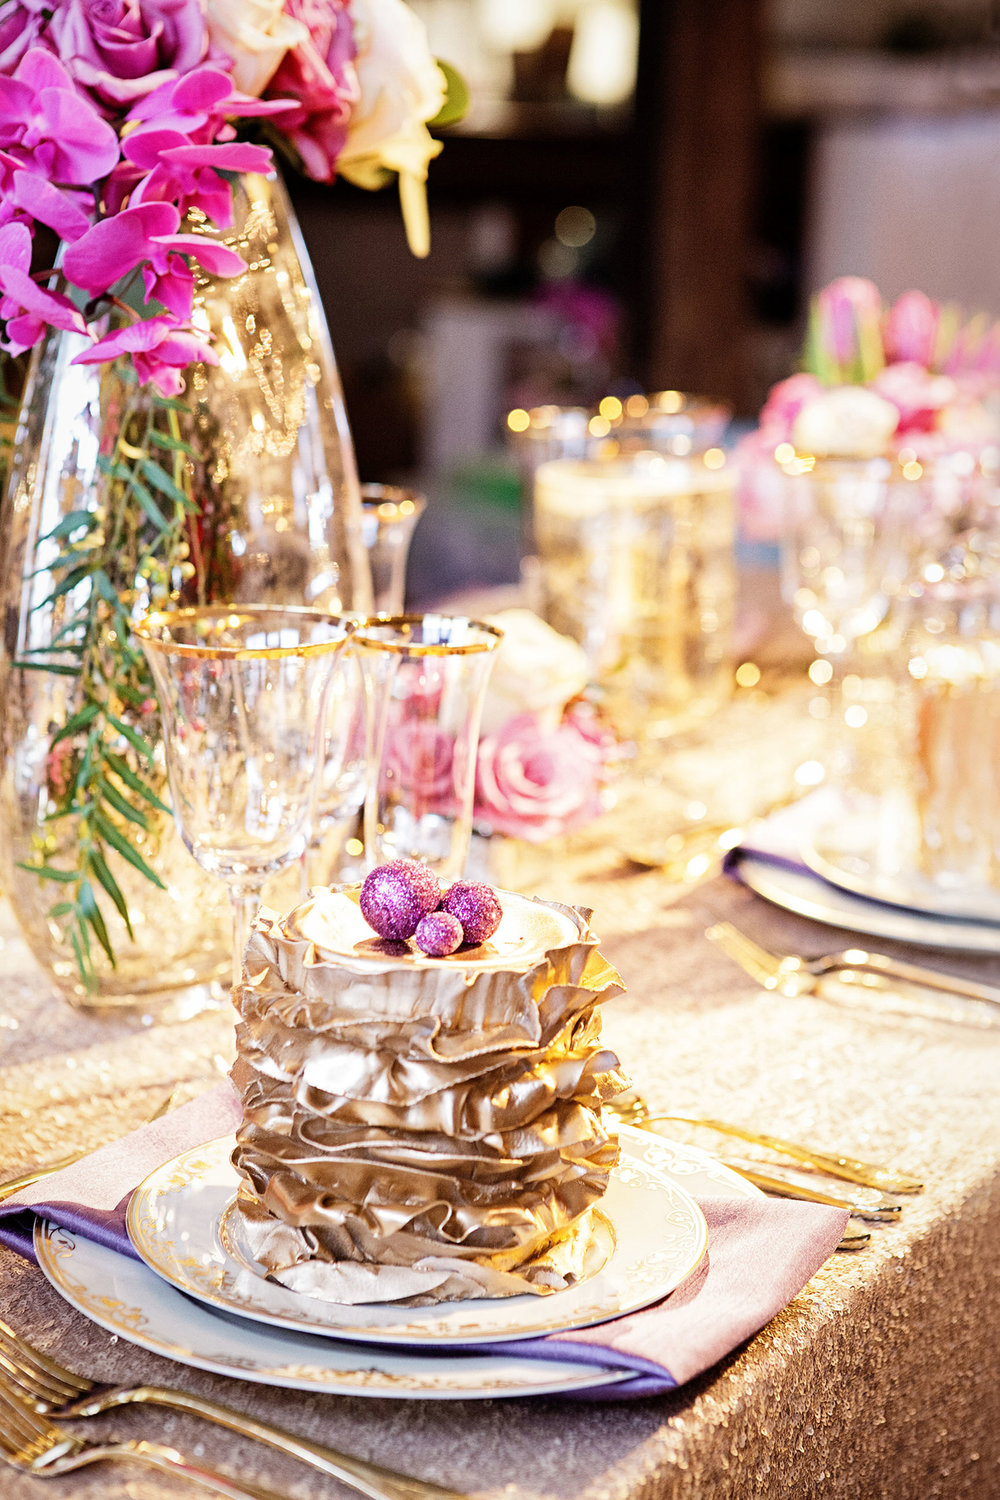 42 Radiant Orchid Greenery Mercury Glass Gold Wedding Centerpiece Philadelphia Wedding.jpg